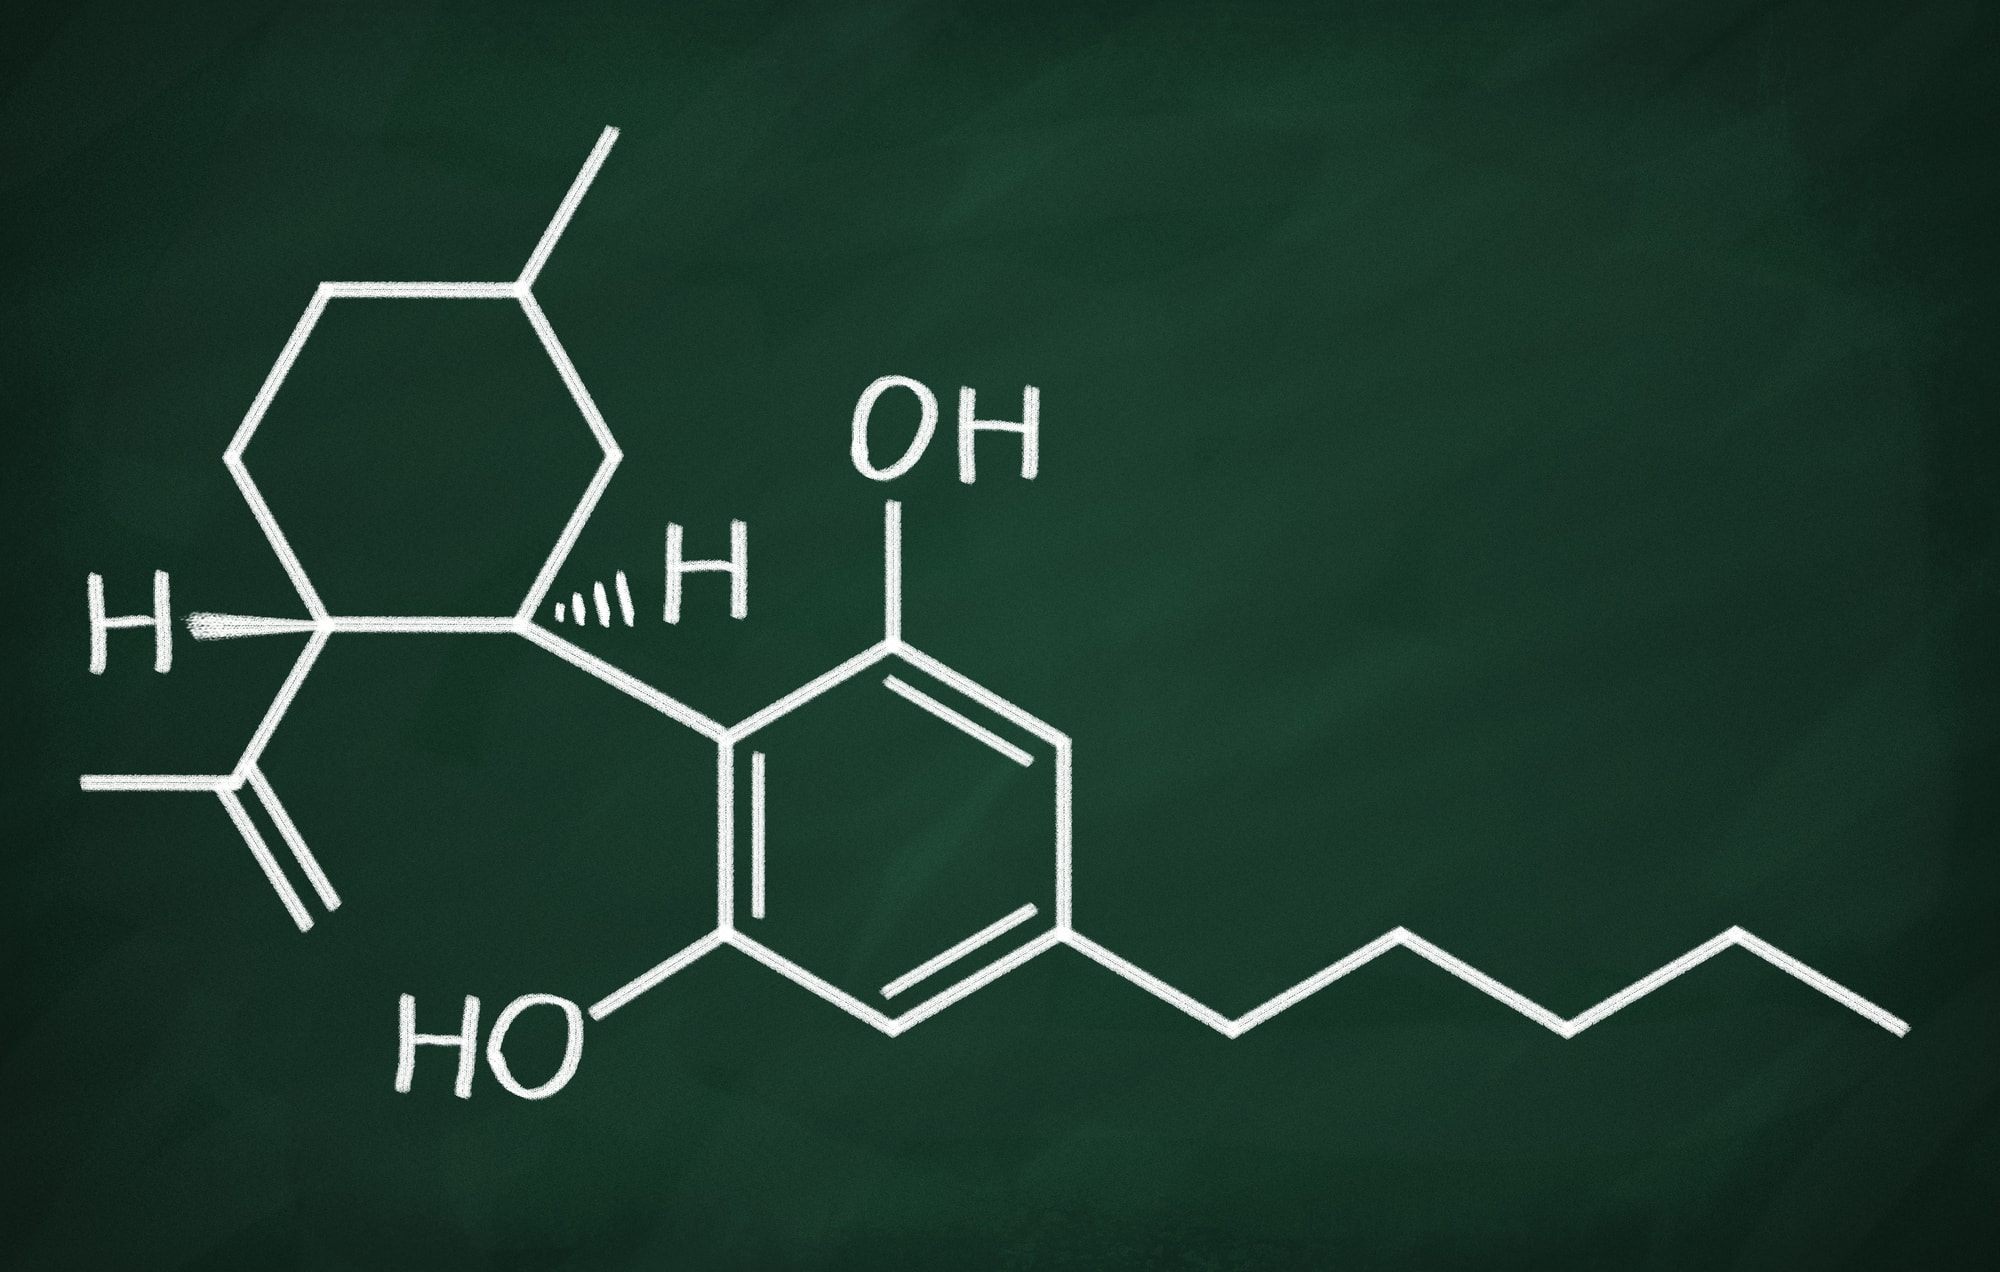 CBD Oil chemical structure - What's the Difference Between Hemp Oil and CBD Oil?